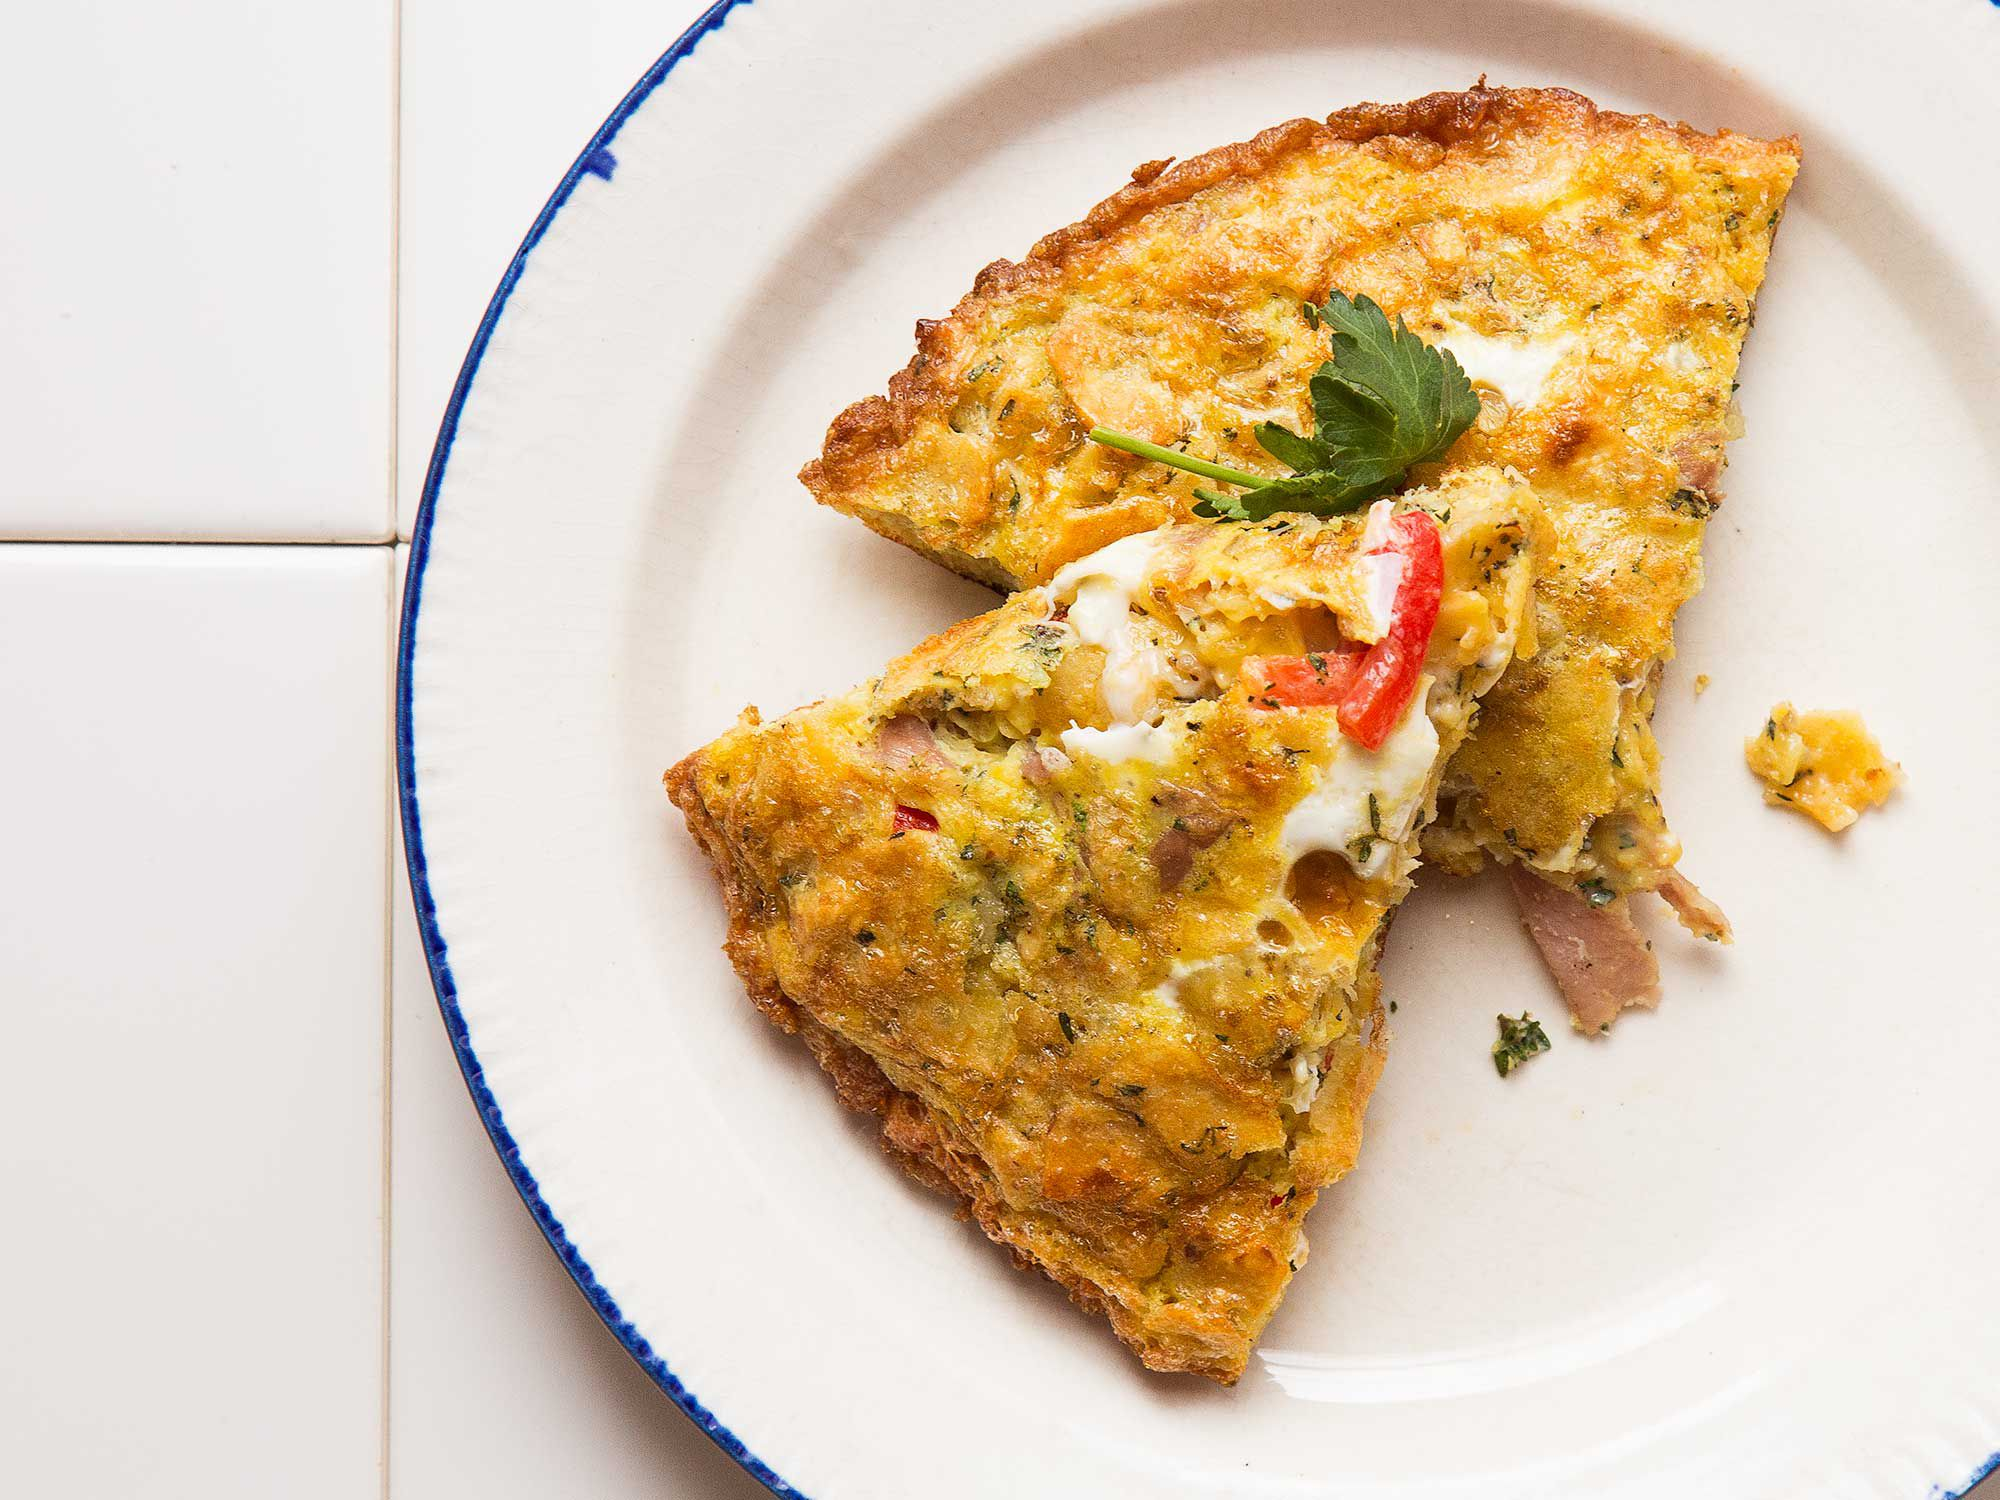 """Renowned Spanish chef Ferran Adrià's tortilla española relies on potato chips instead of the usual thinly sliced potatoes. <a href=""""https://www.saveur.com/article/Recipes/Classic-Spanish-Potato-Frittata/"""">Get the recipe for Tortilla Española with Potato Chips »</a>"""